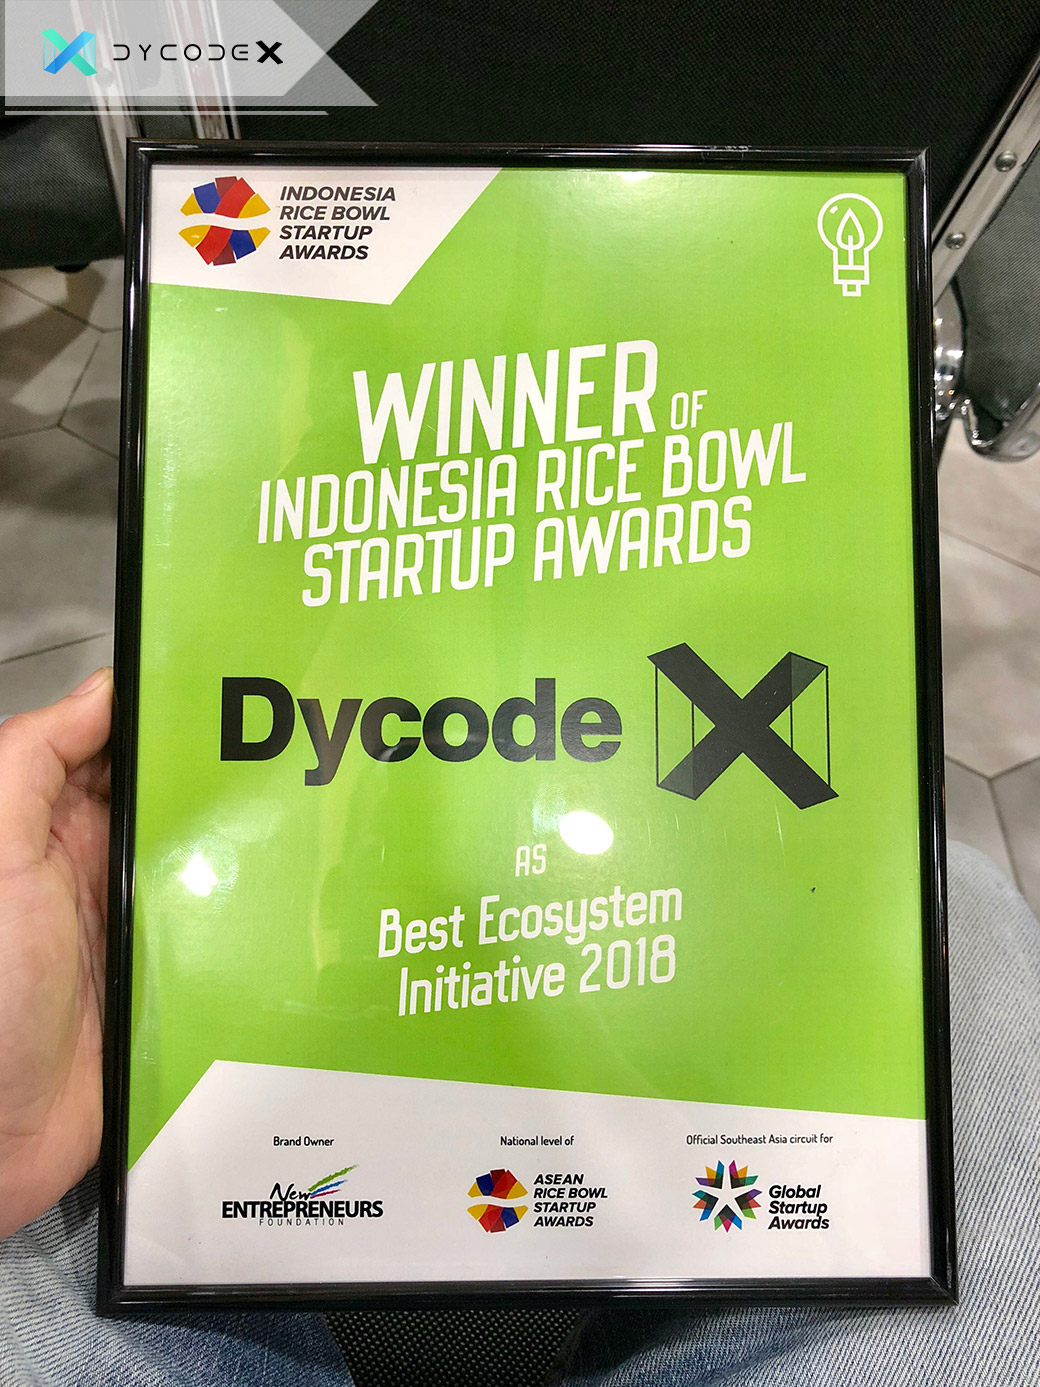 DycodeX Wins Rice Bowl Awards 2018 as Best Ecosystem Initiative in Indonesia